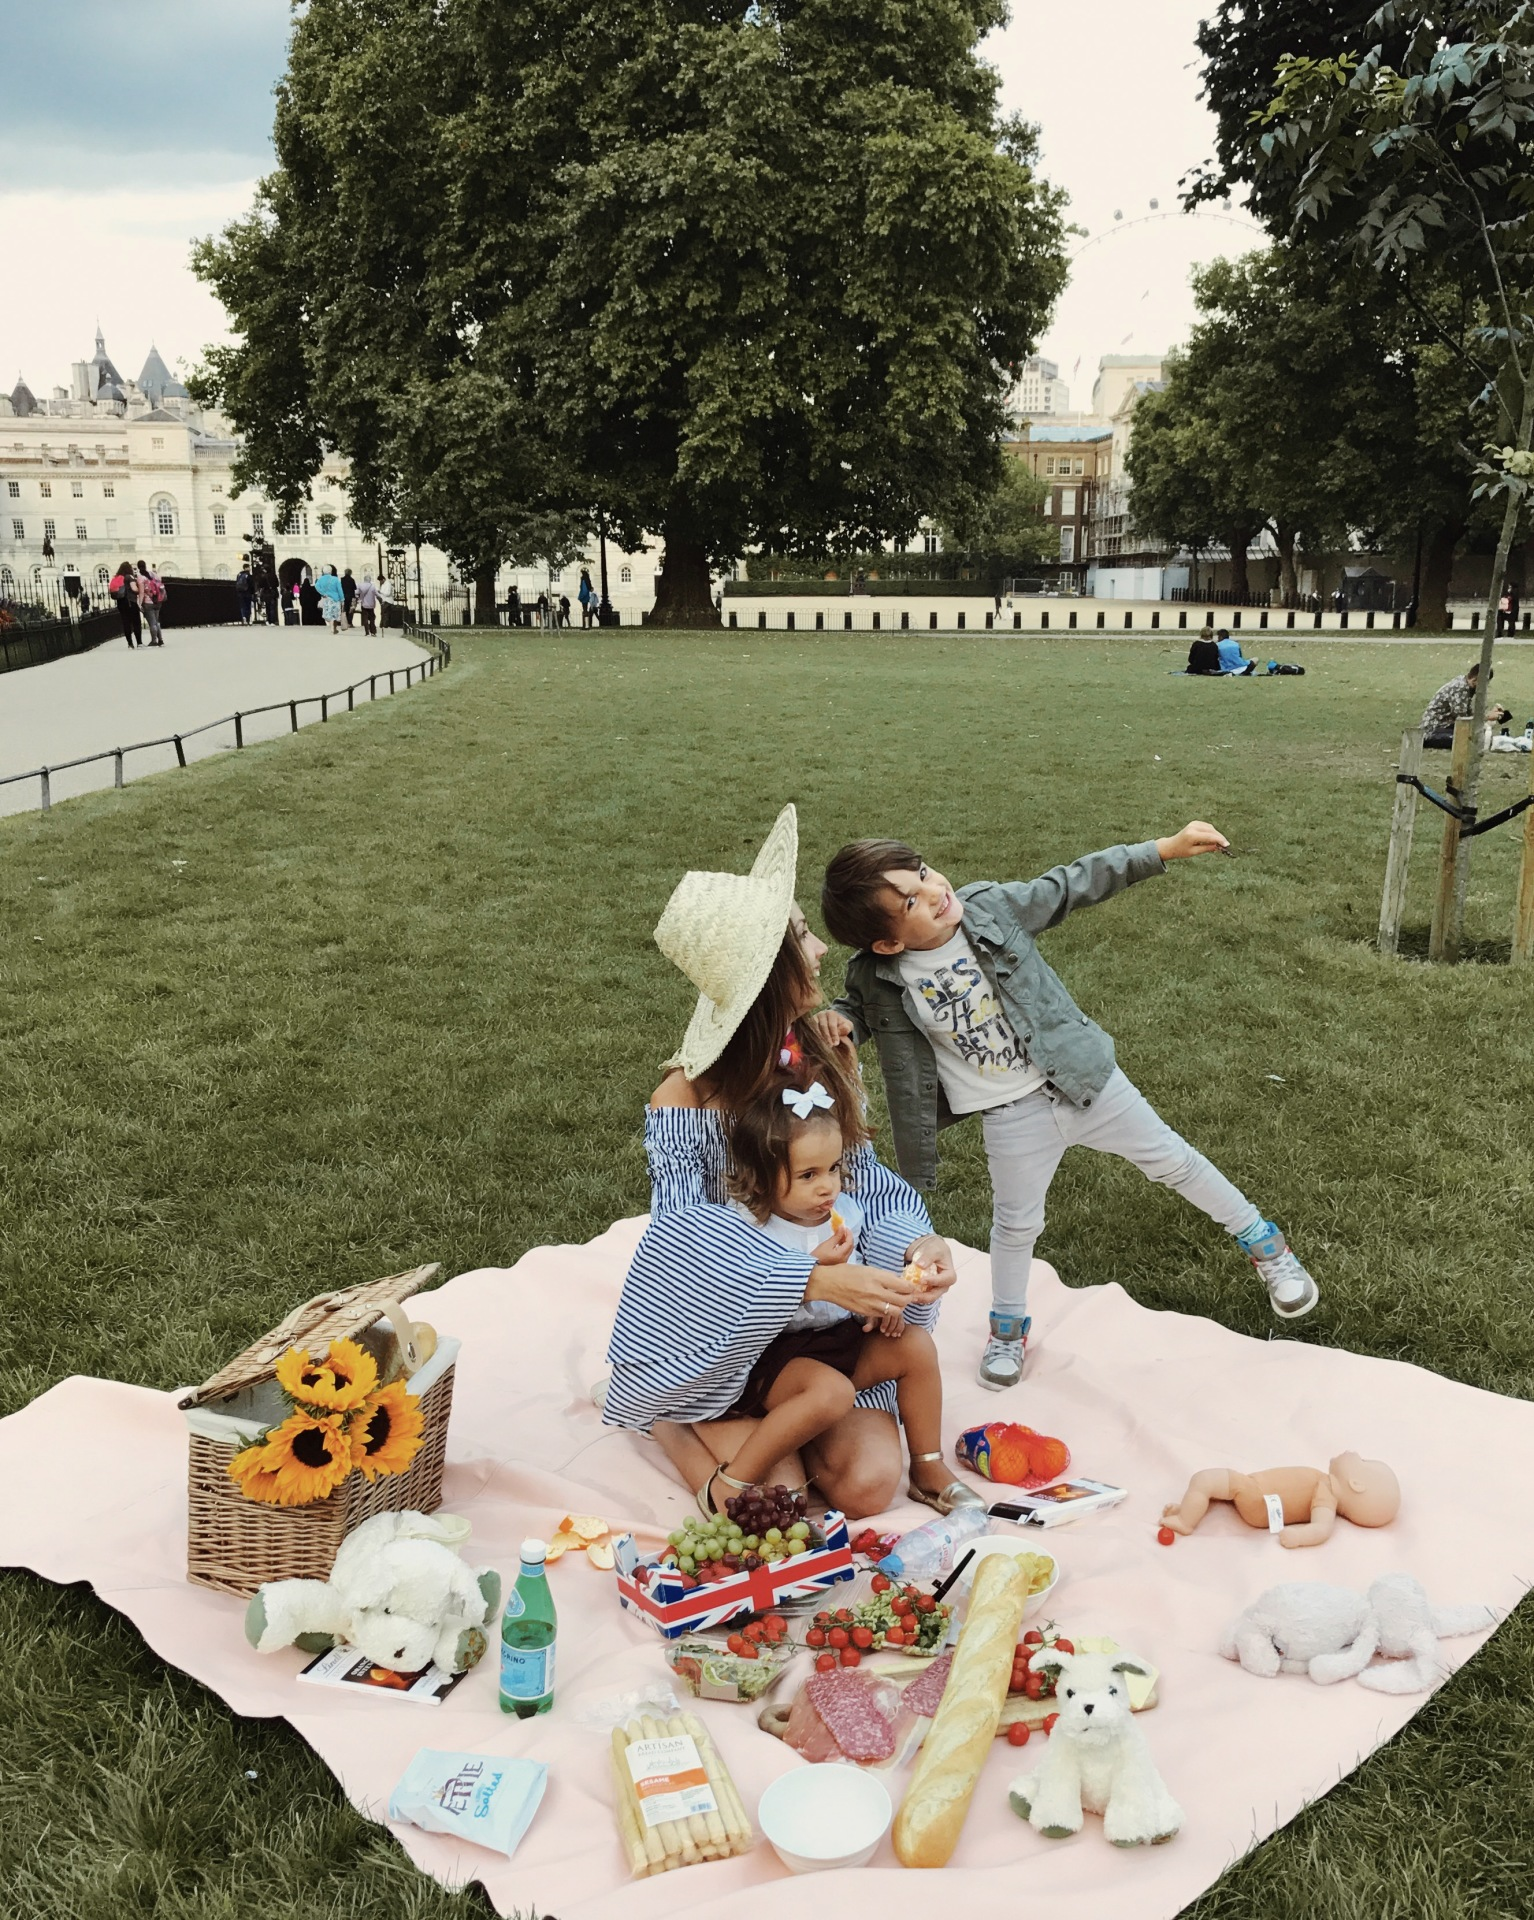 Picnic in St.James's Park with family